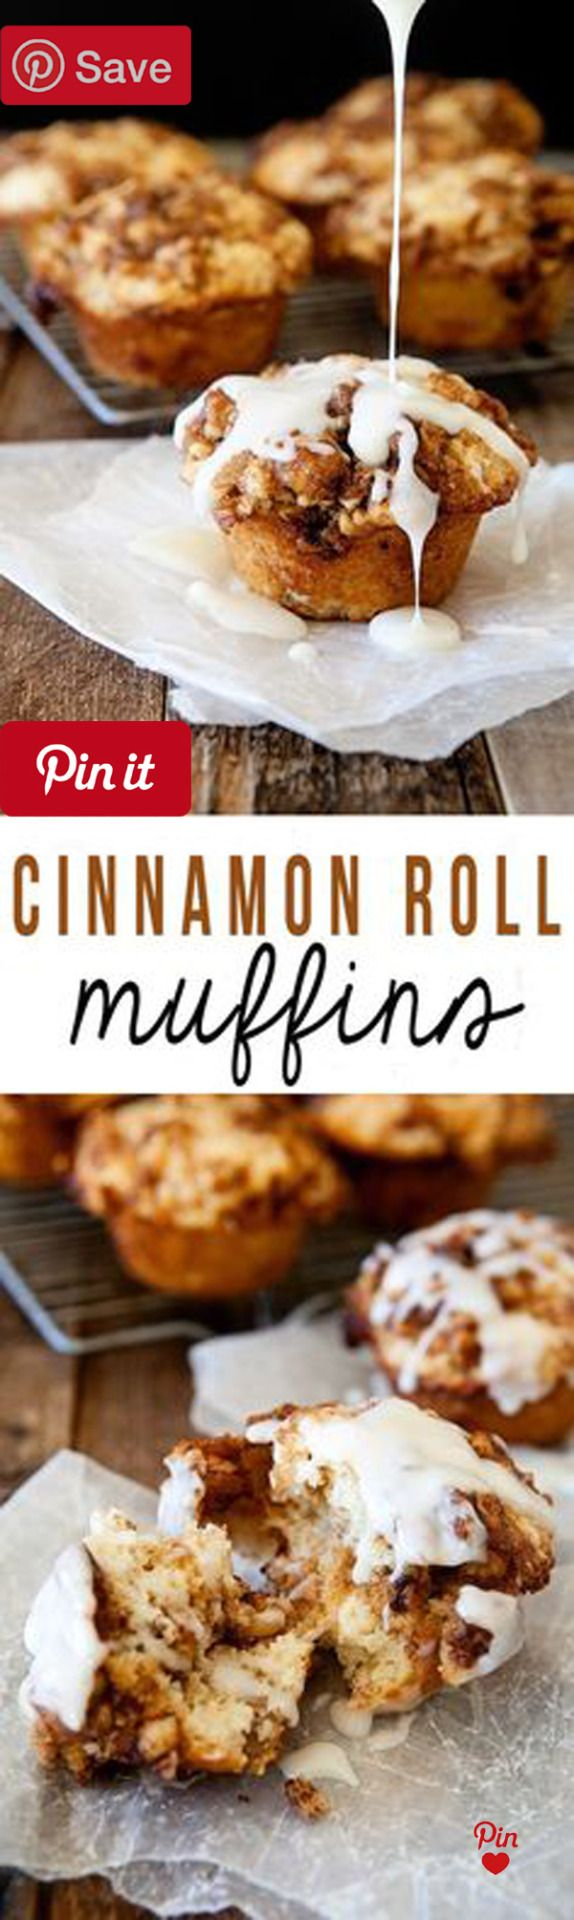 Cinnamon Roll Muffins - Ingredients  Vegetarian  Refrigerated  1 Egg  Baking & Spices  2 cups All purpose flour  3 tsp Baking powder  1 cup Brown sugar loosely packed  3 tsp Cinnamon ground  1 cup Powdered sugar   tsp Salt   cup Sugar  1 dash Vanilla  Nuts & Seeds  1  cups Pecans or walnuts  Dairy  6 tbsp Butter  2 oz Cream cheese  1 1/16 cup Milk #delicious #diy #Easy #food #love #recipe #recipes #tutorial #yummy @mabarto - Make sure to follow cause we post alot of food recipes and DIY we…